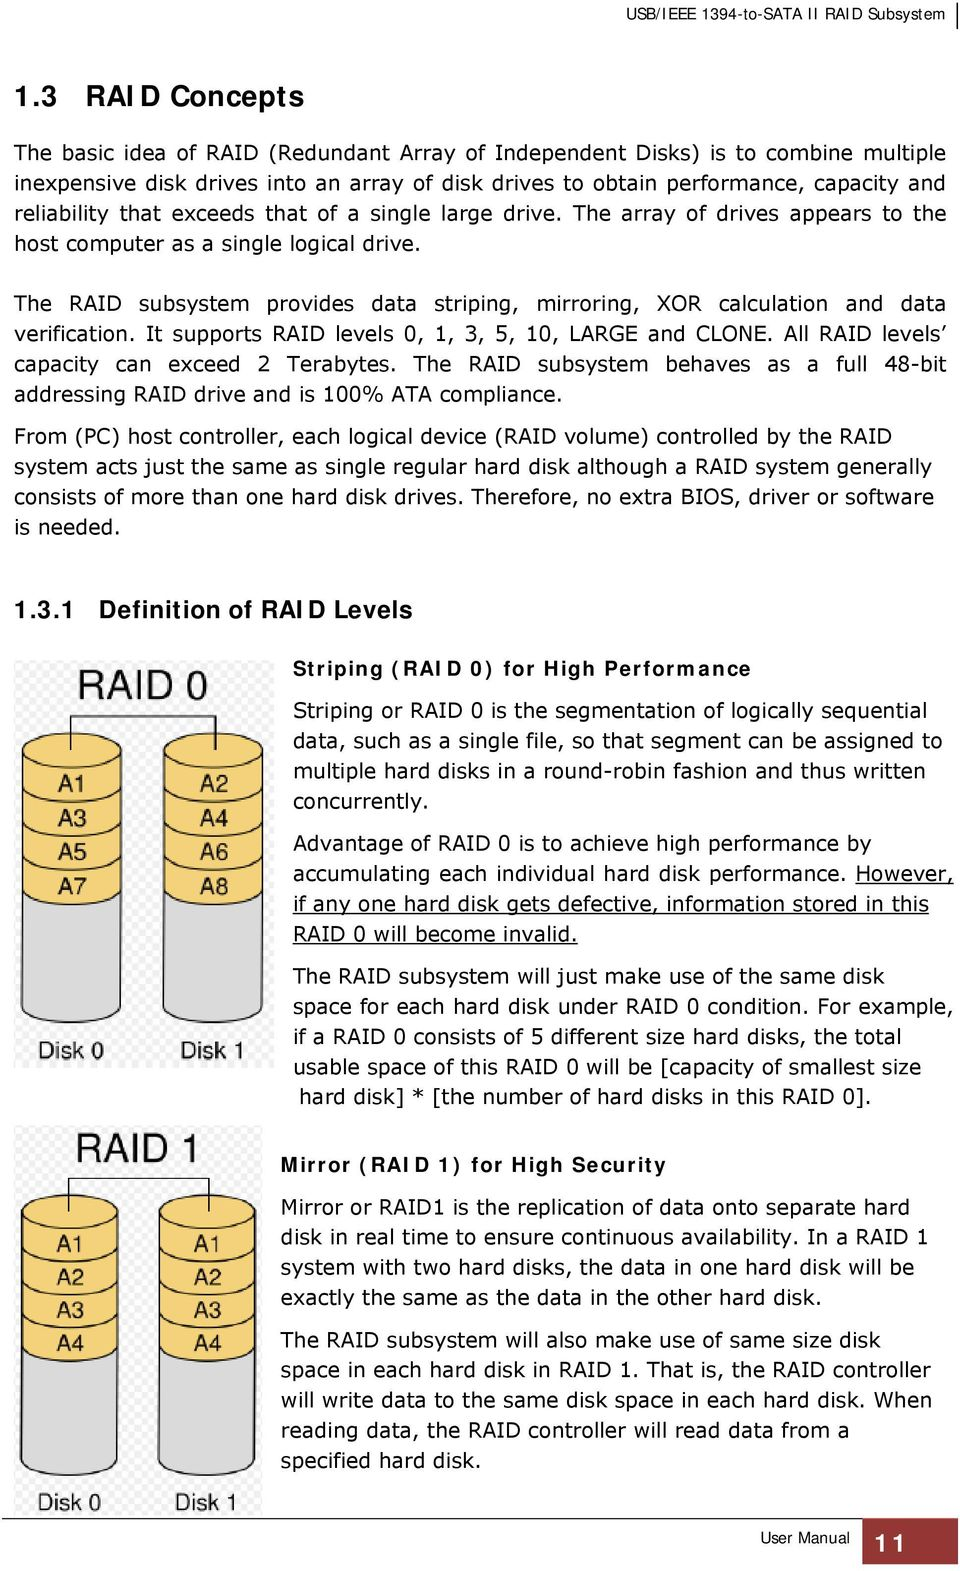 The RAID subsystem provides data striping, mirroring, XOR calculation and data verification. It supports RAID levels 0, 1, 3, 5, 10, LARGE and CLONE. All RAID levels capacity can exceed 2 Terabytes.